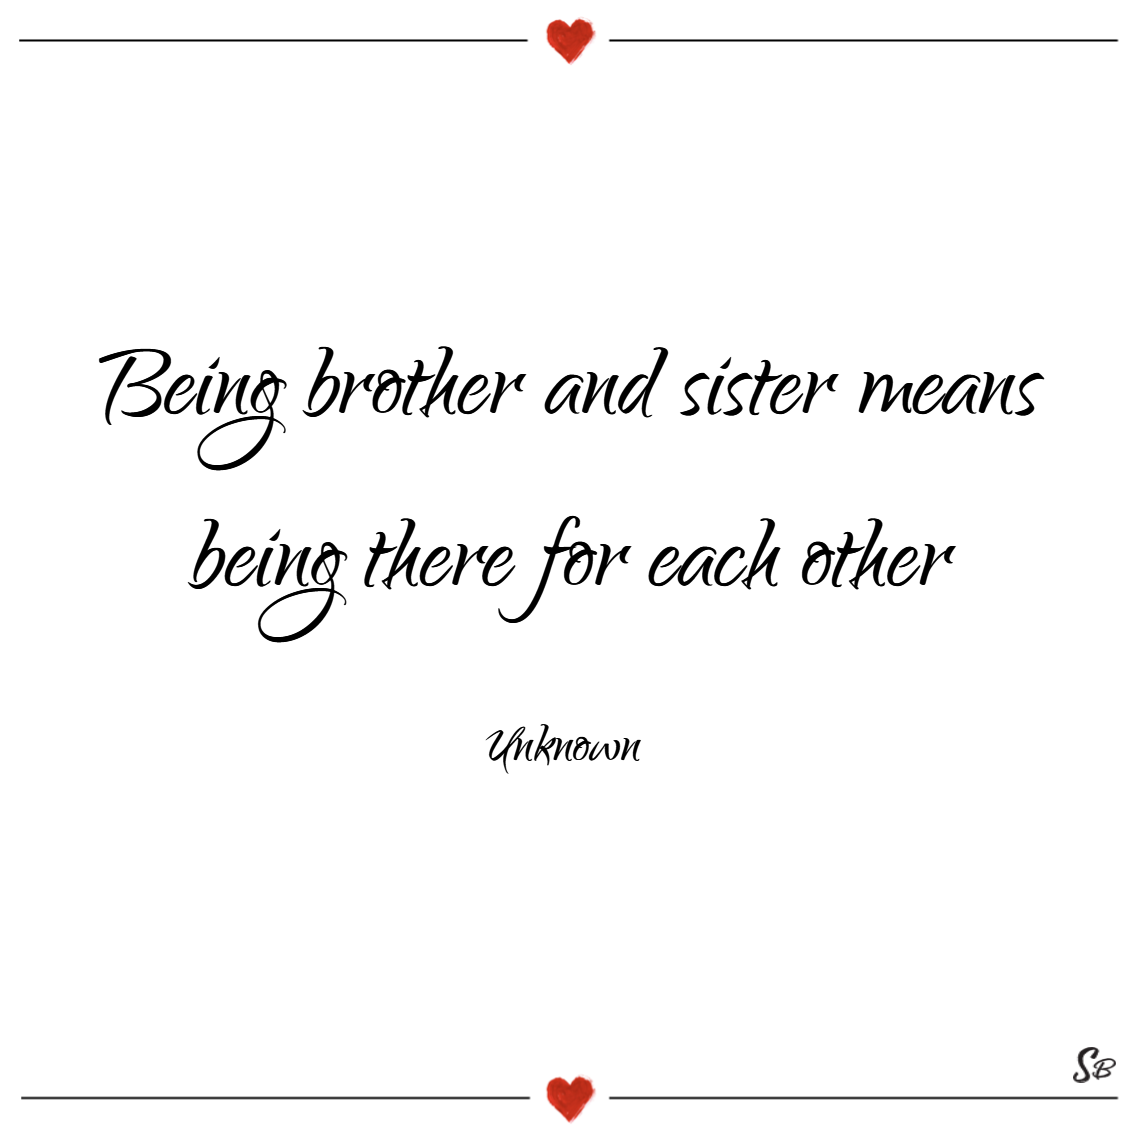 Being brother and sister means being there for each other. – unknown